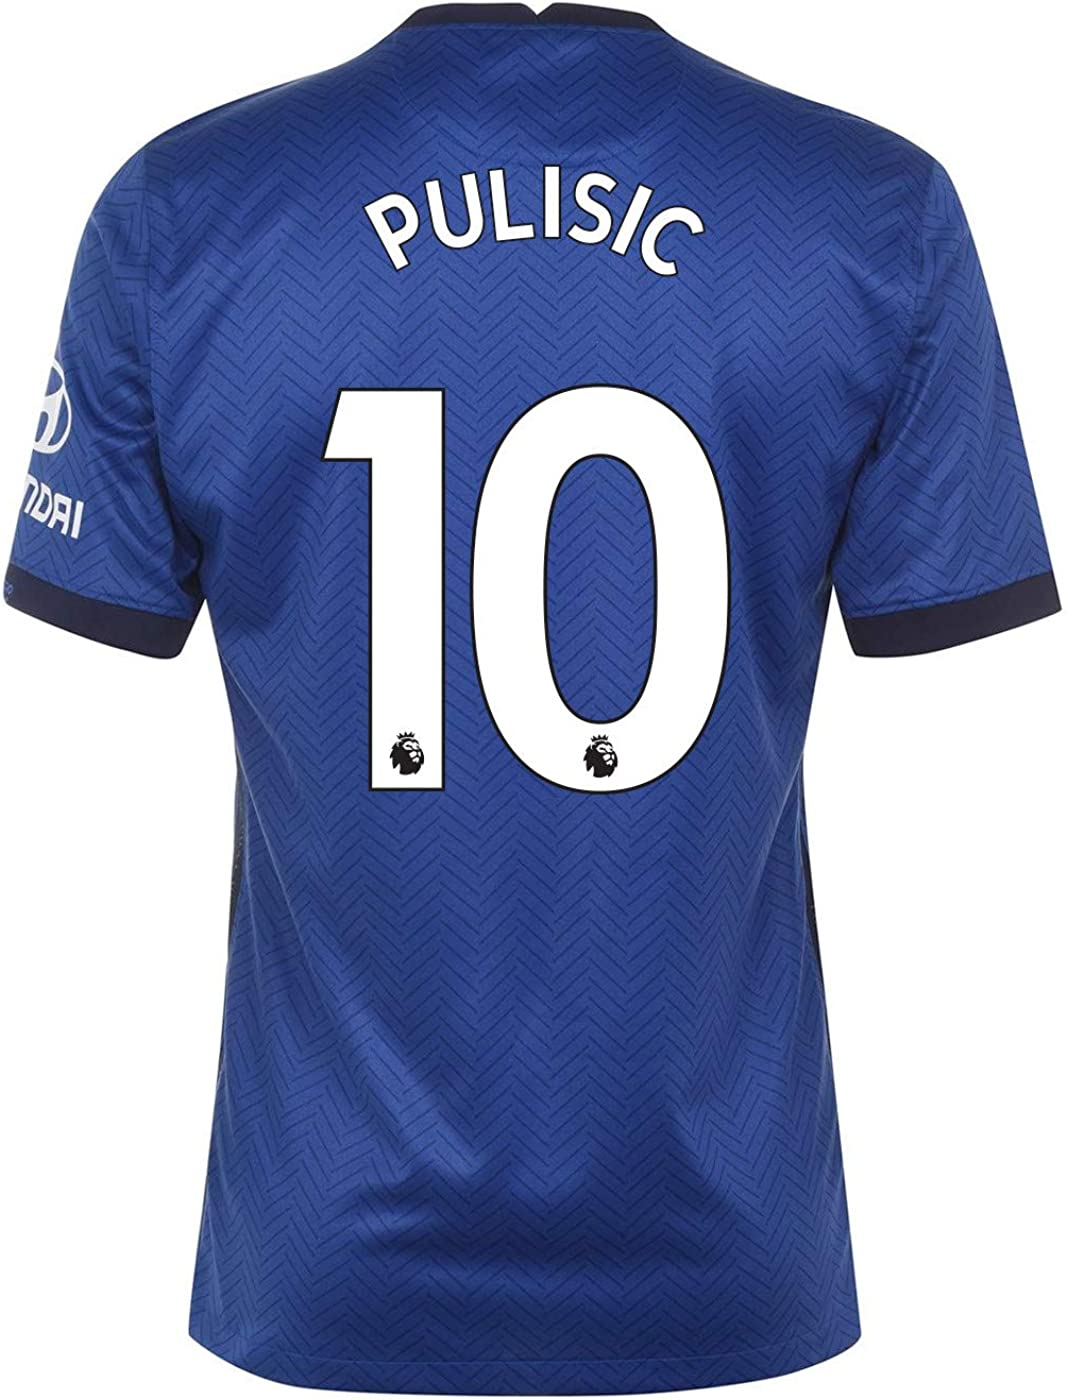 PULISIC #10 Chelsea Home Men's Stadium Soccer Jersey- 2020/21